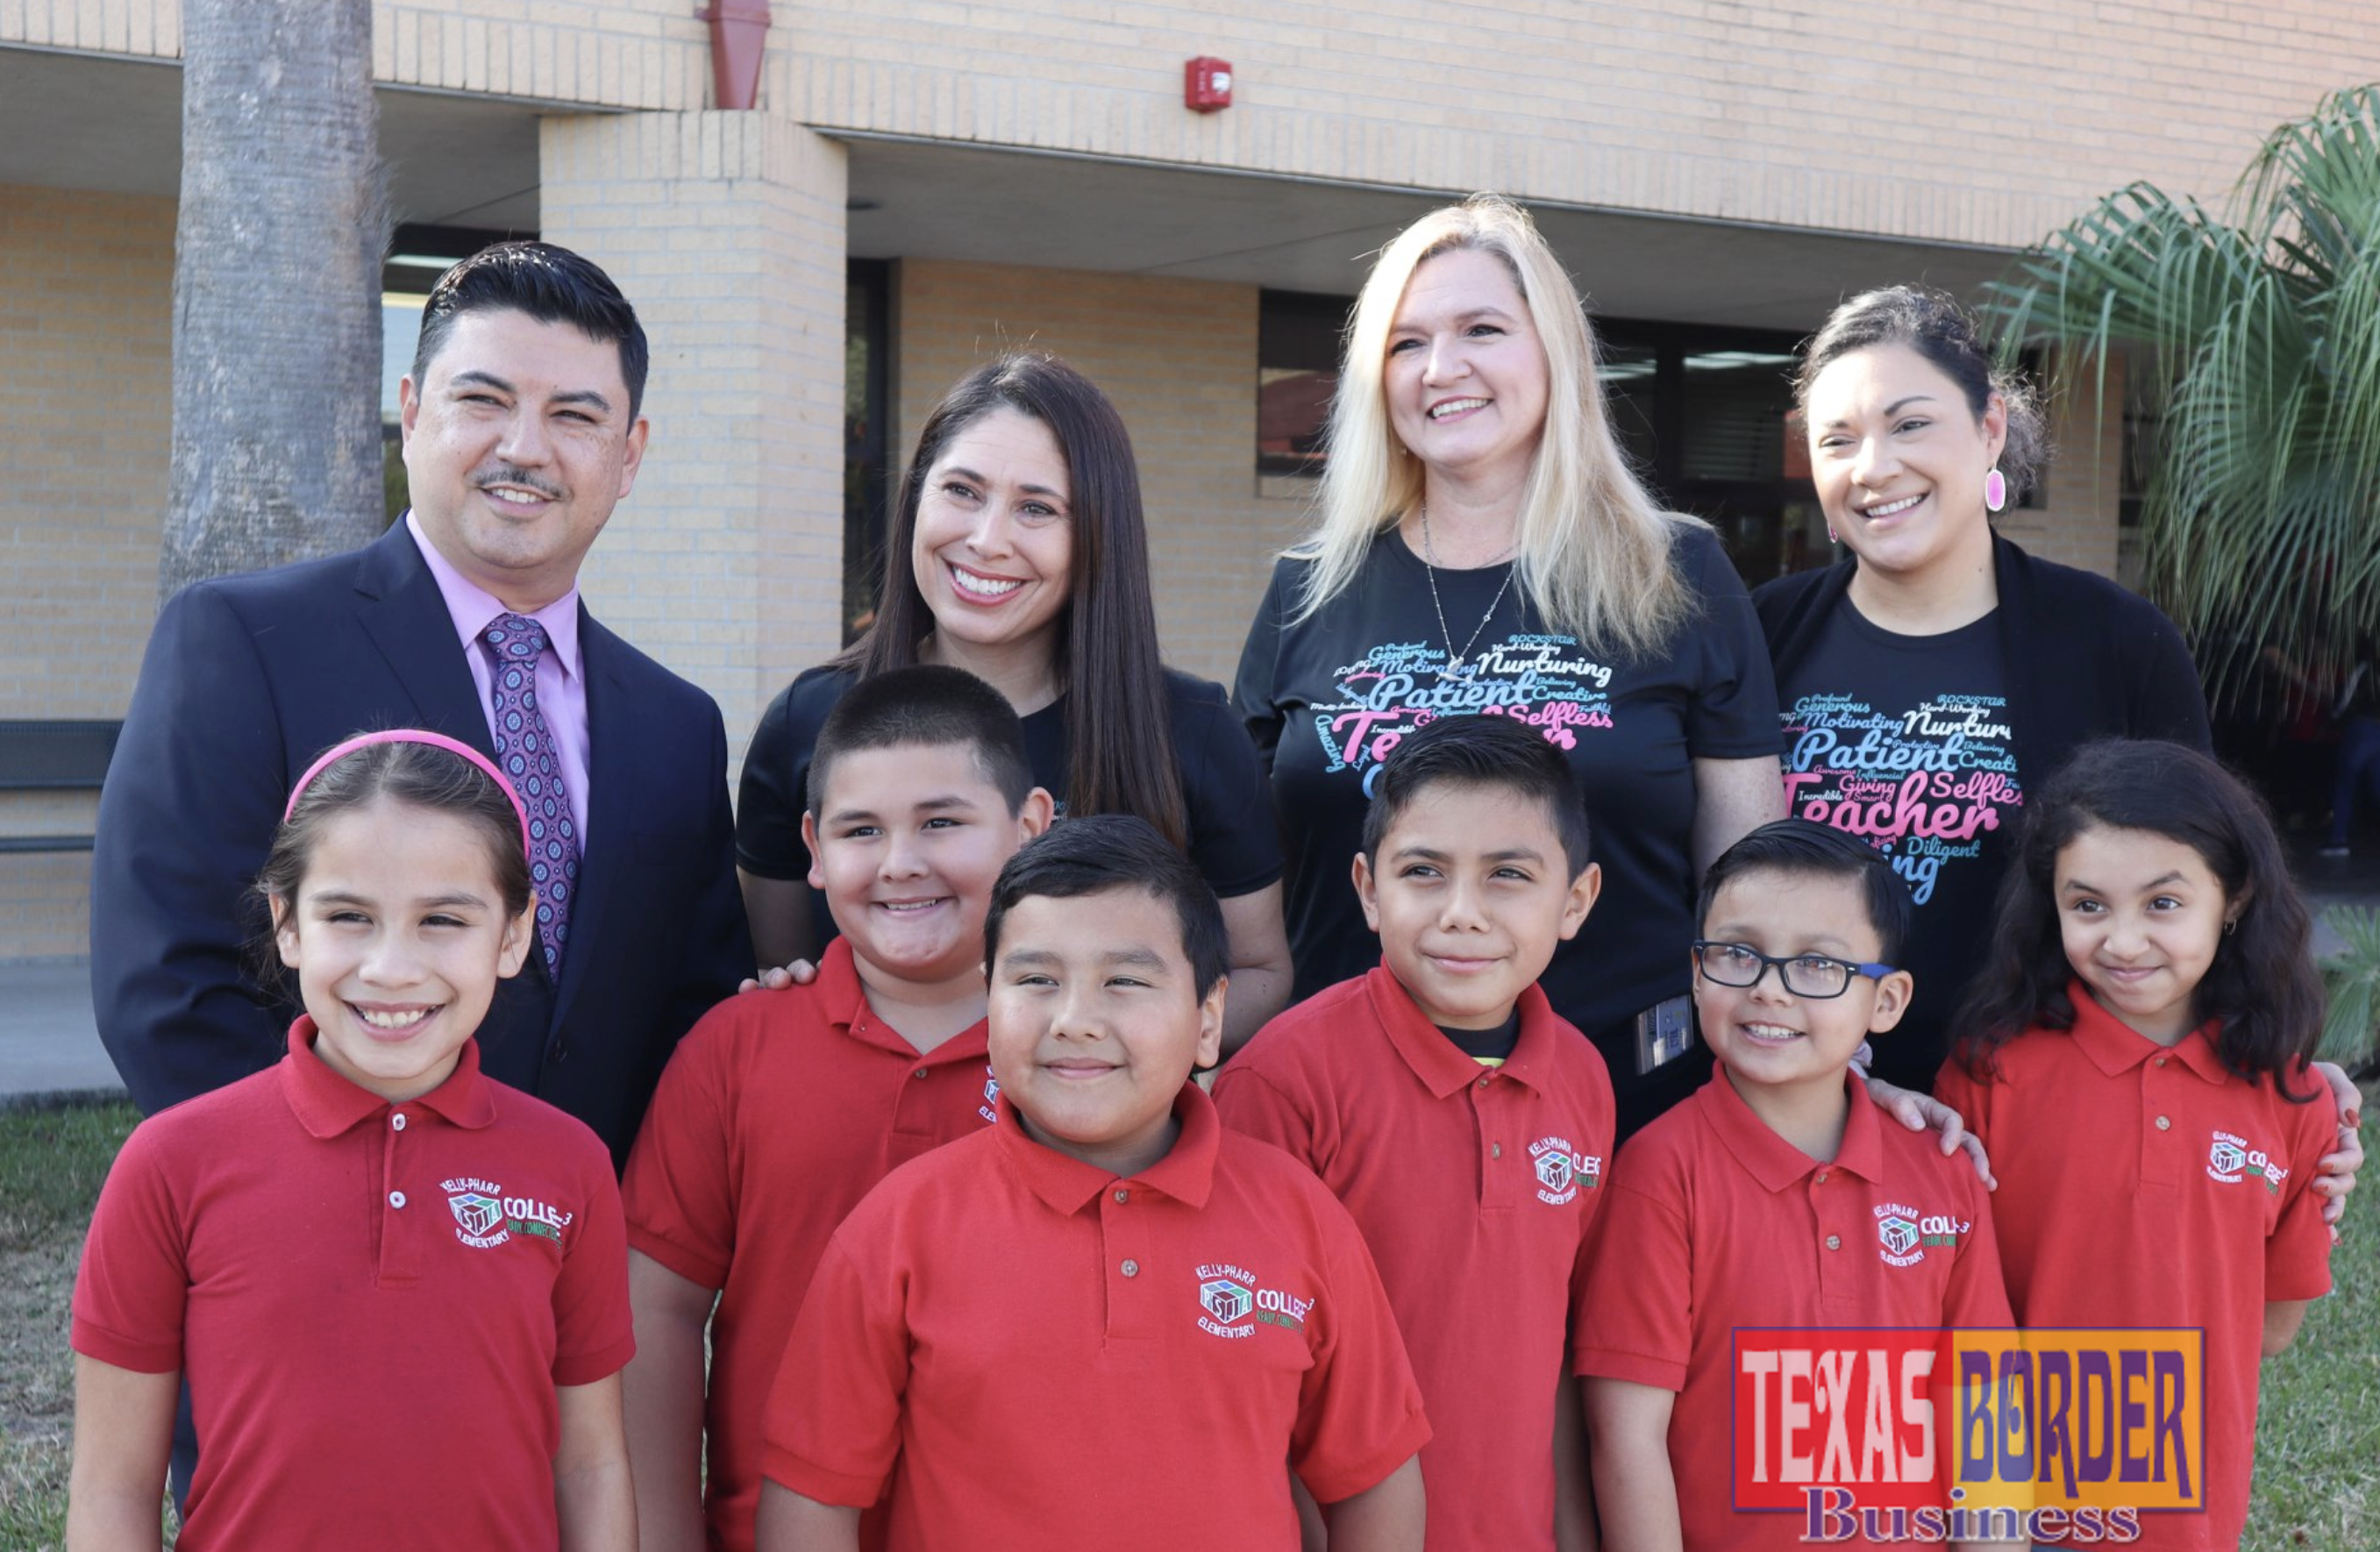 Psja Isd Elementary Nominated As A 2020 National Blue Ribbon School Texas Border Business Reunite with old classmates, learn about class reunions and take a look back at your yearbook photos! psja isd elementary nominated as a 2020